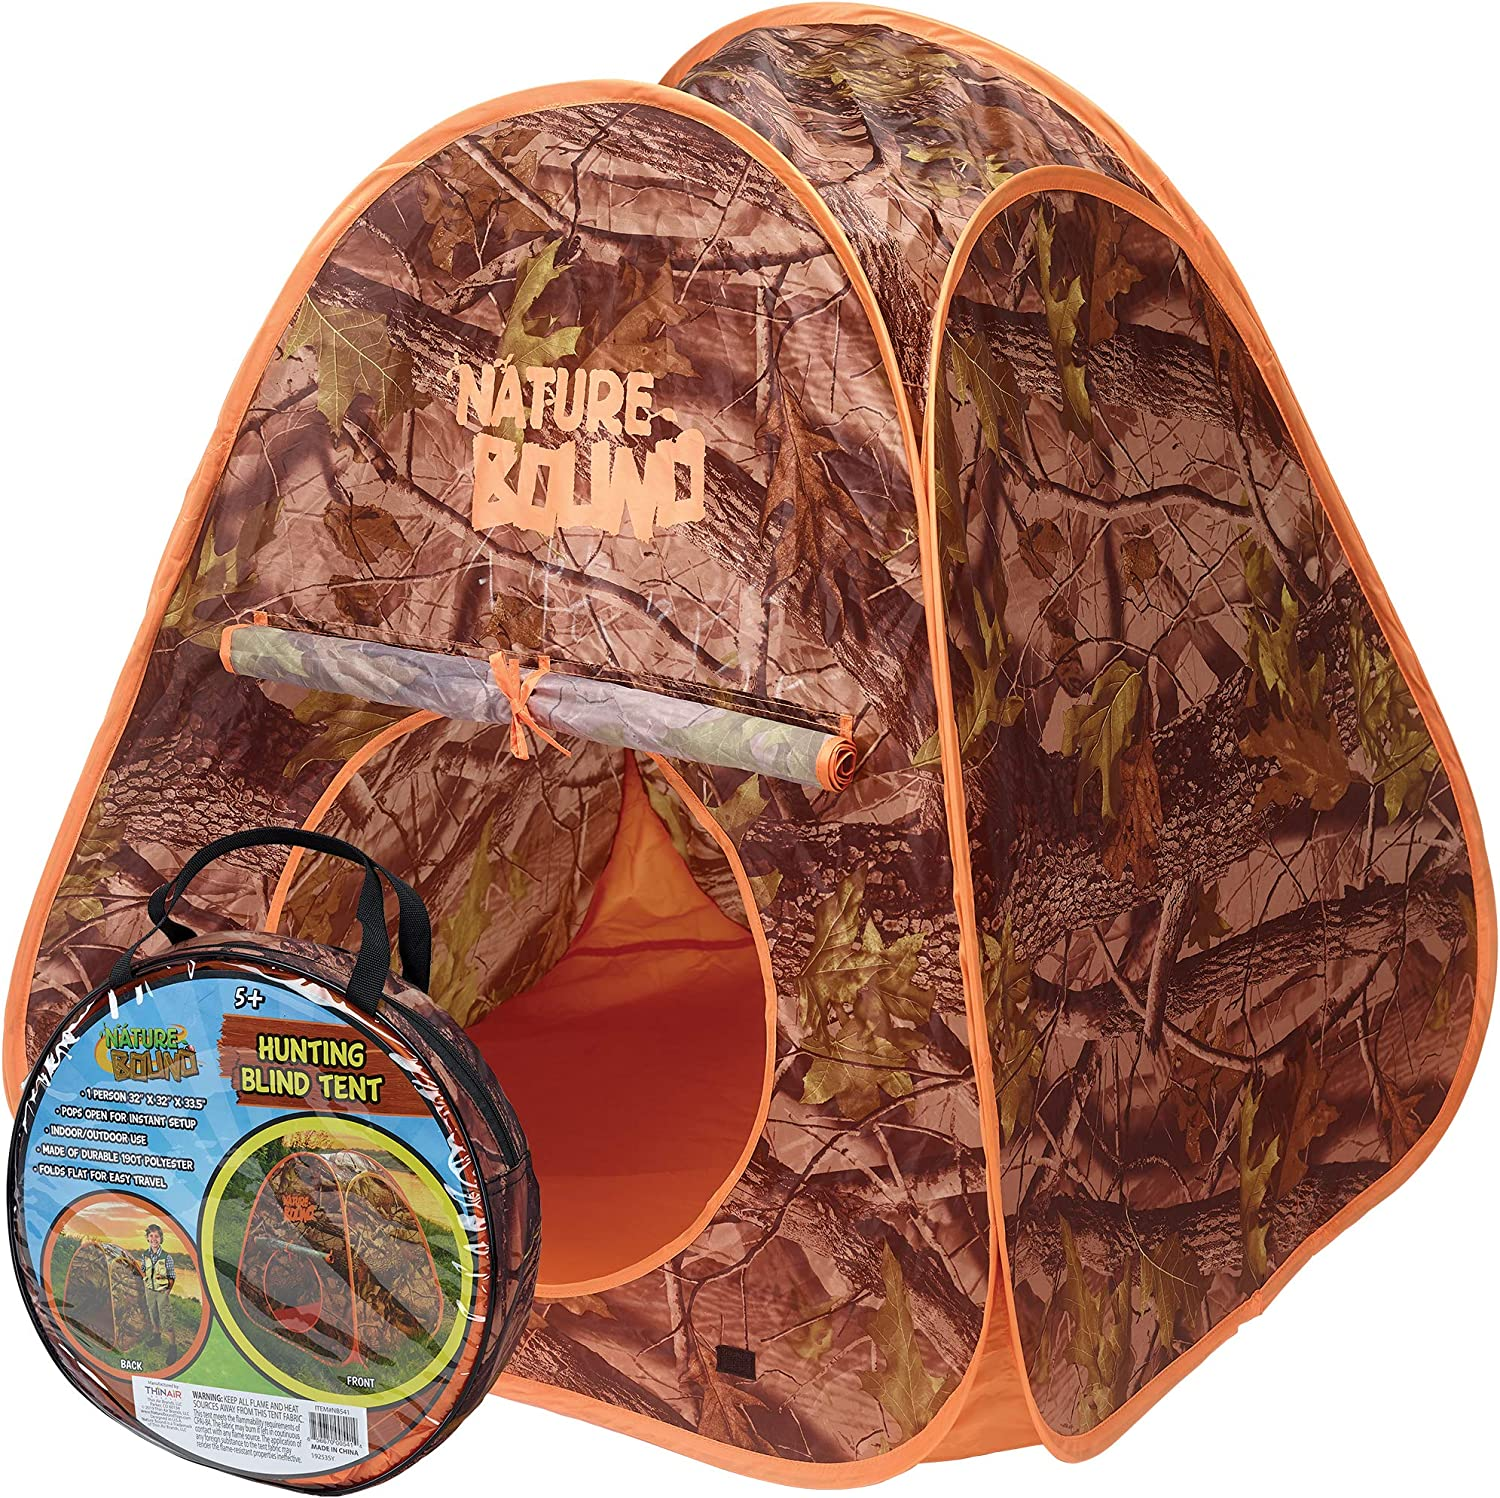 Nature Bound Kids Playhouse Pop Up Hunting Blind Tent for Indoor or Outdoor Use, 32 Inches Long, 32 Inches Wide, 35.5 Inches High, for Boys and Girls Ages 5+, Camoflauge (NB541)